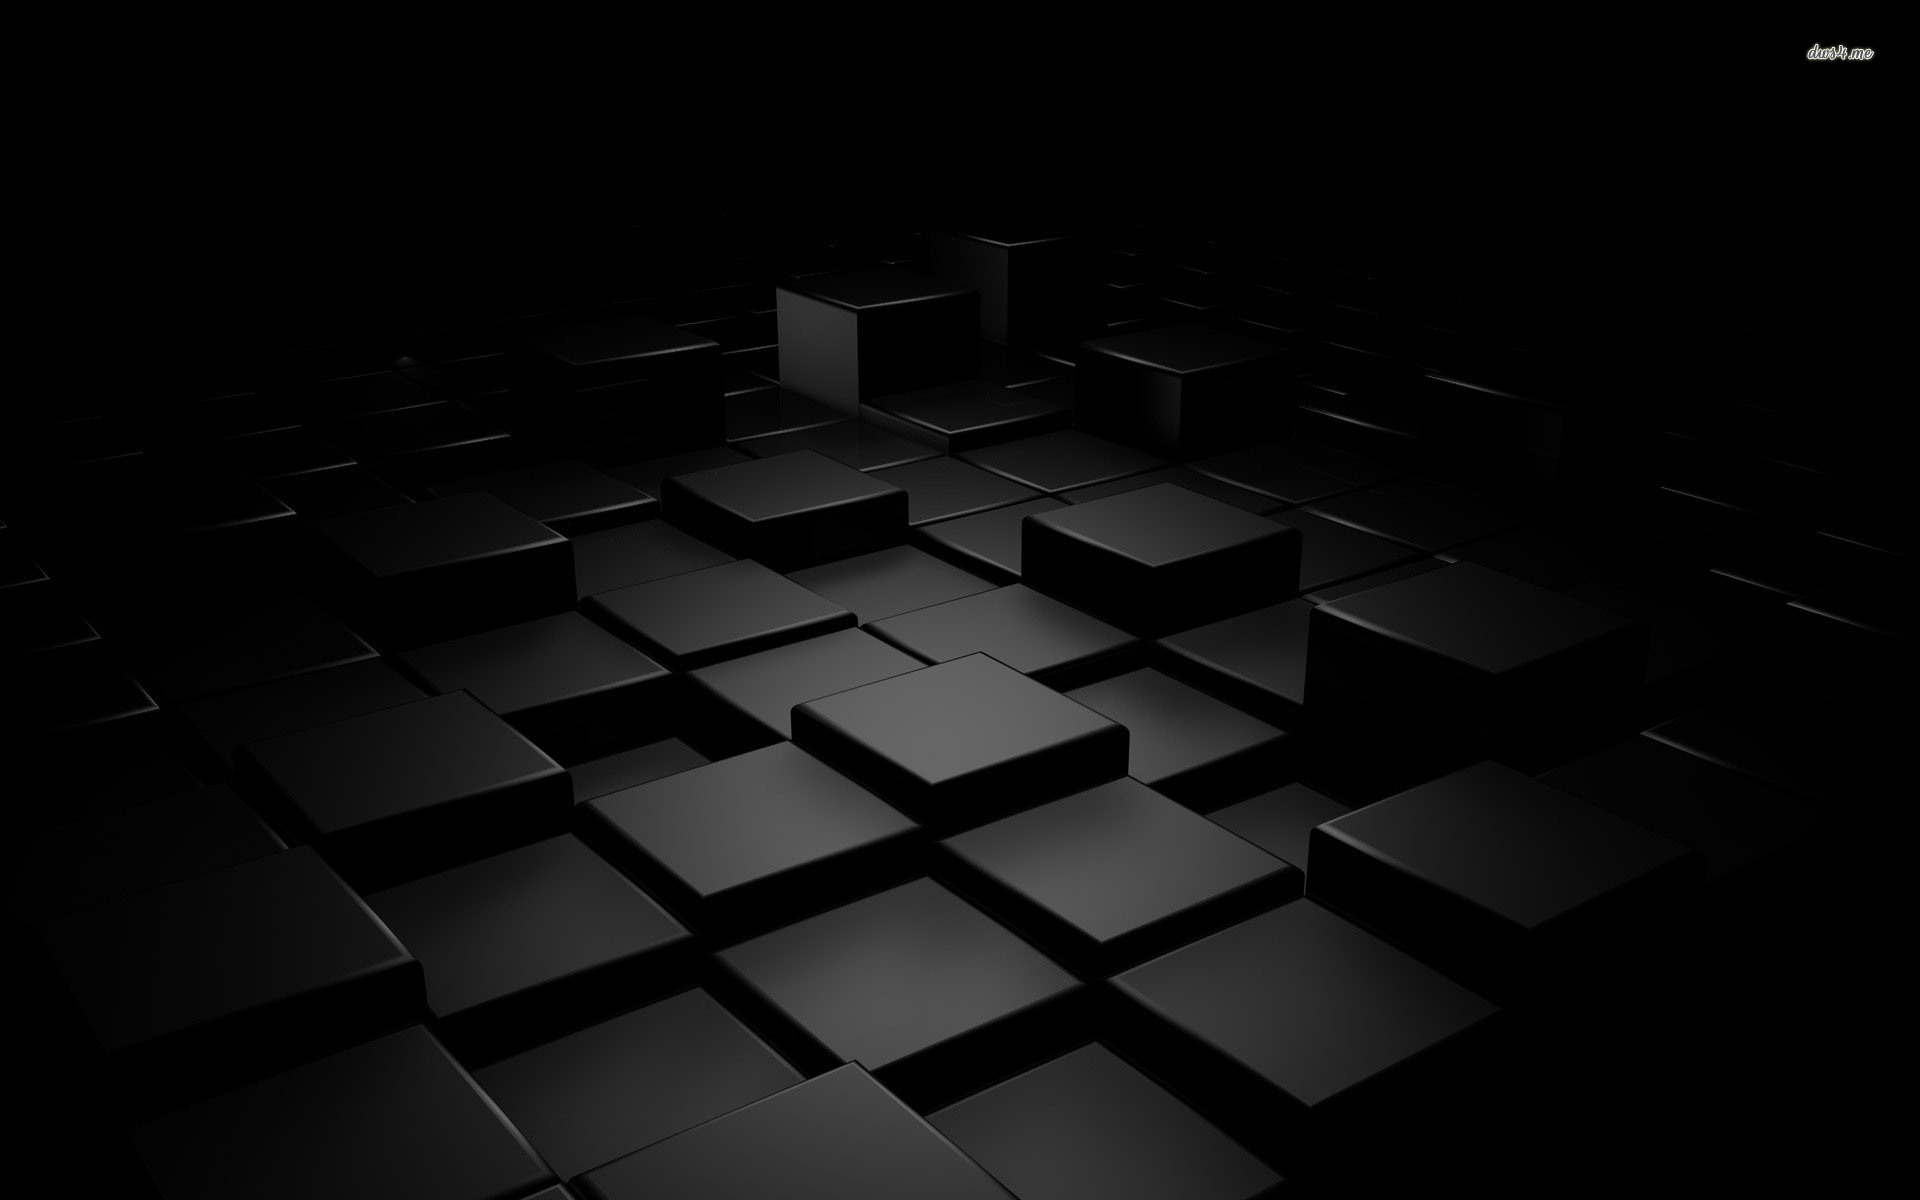 Black Cubes 3d Background wallpaper by background RevelWallpapers 1920x1200